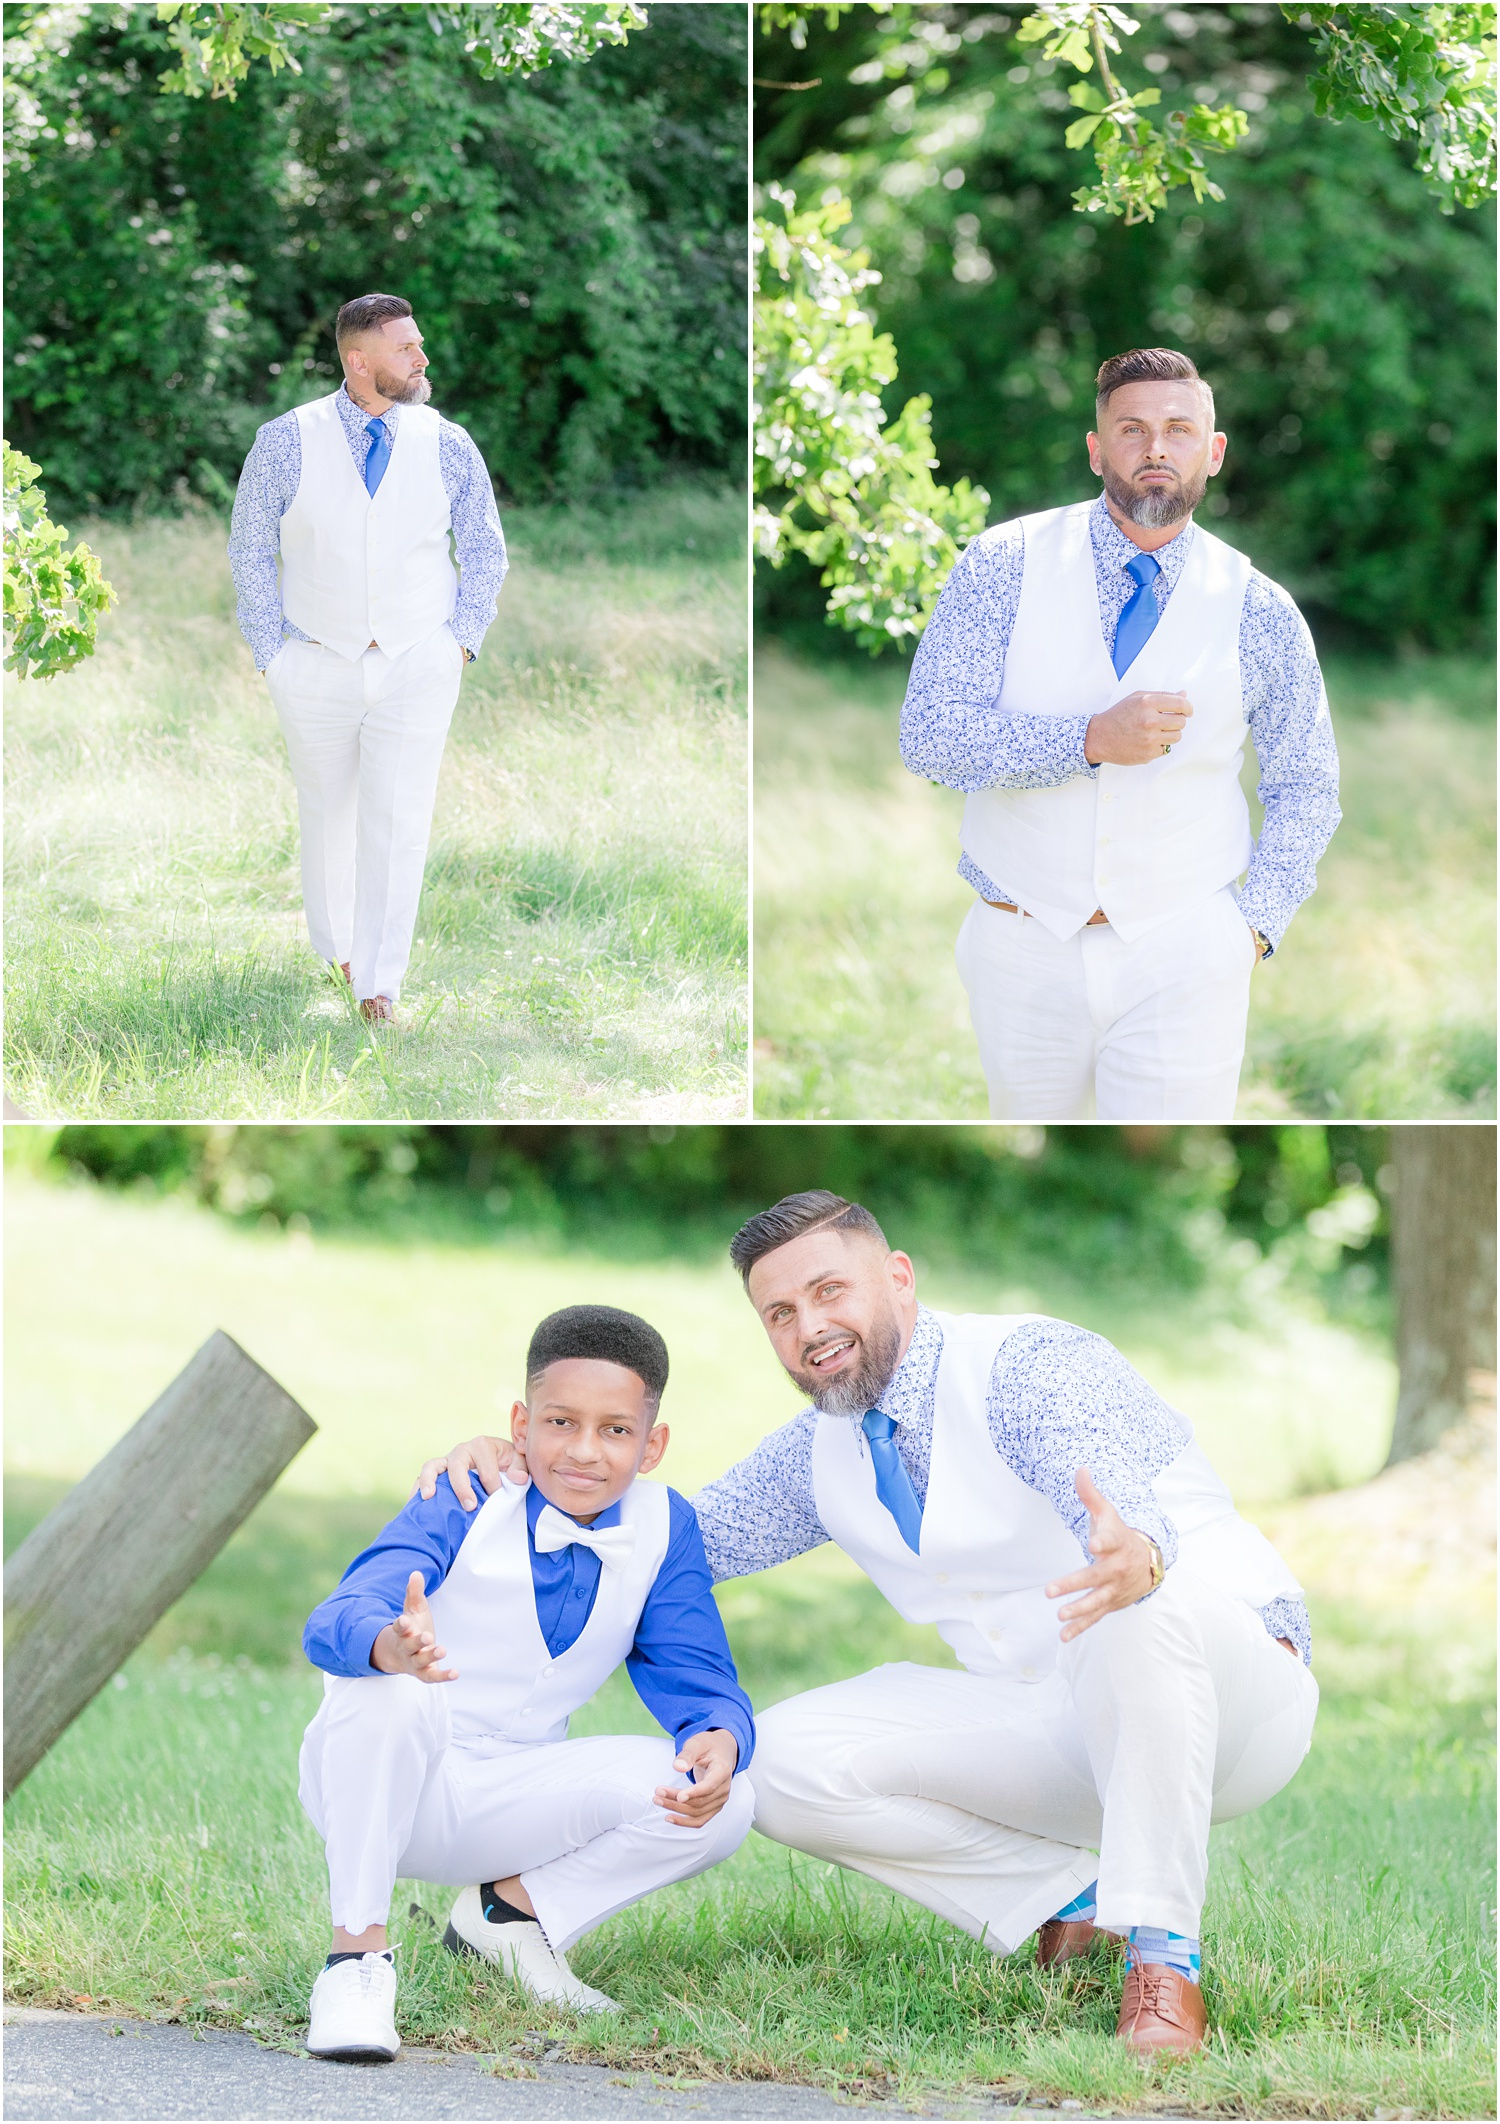 GQ Groom photos for a wedding in Chesapeake City, MD.